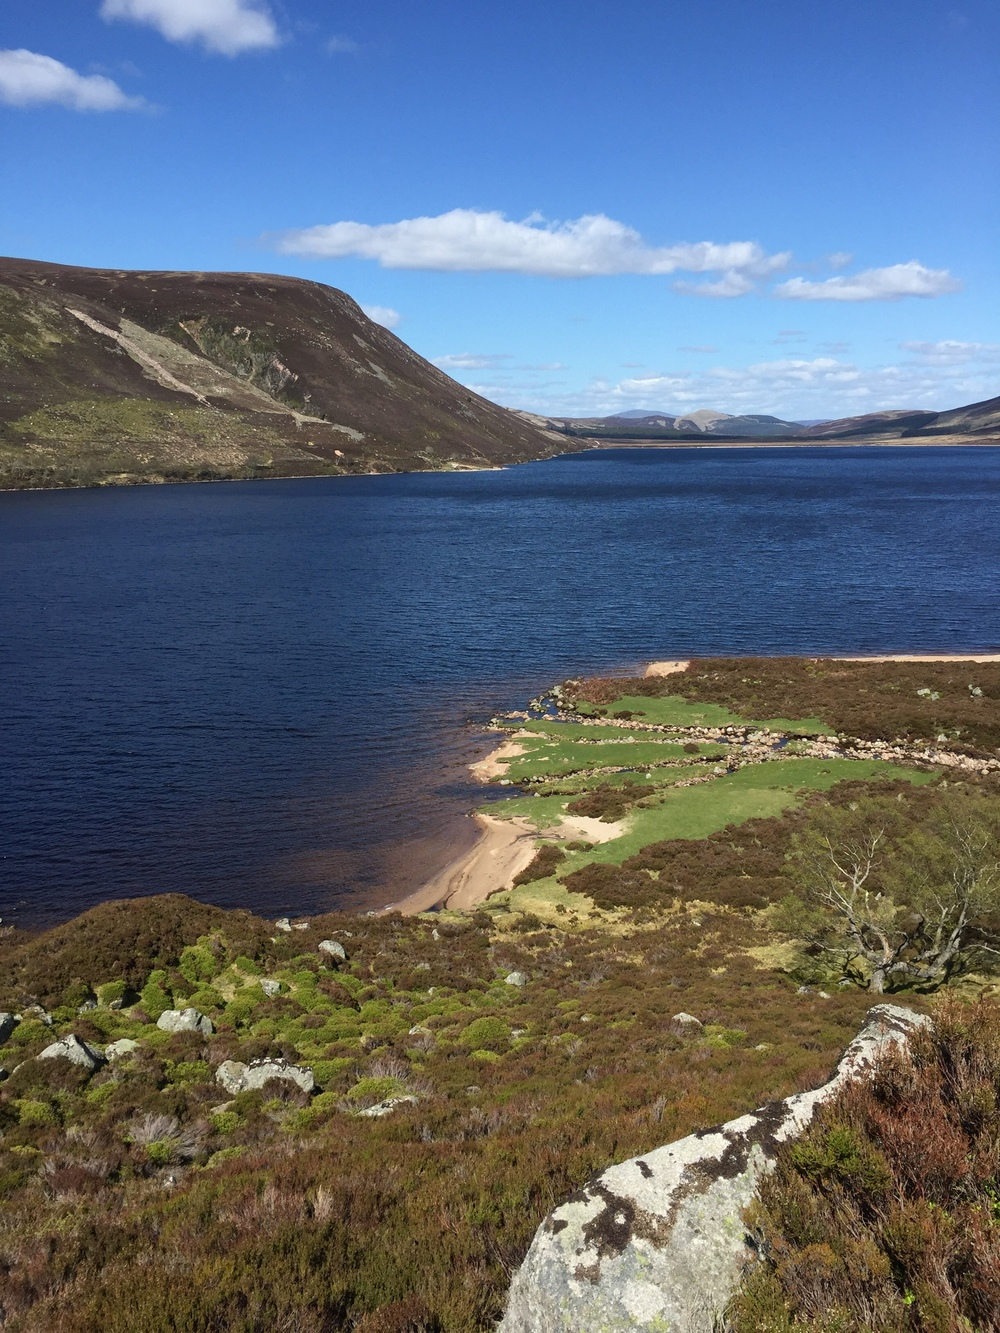 The 'beach' at Loch Muick.. a favourite spot of mine to stop at.